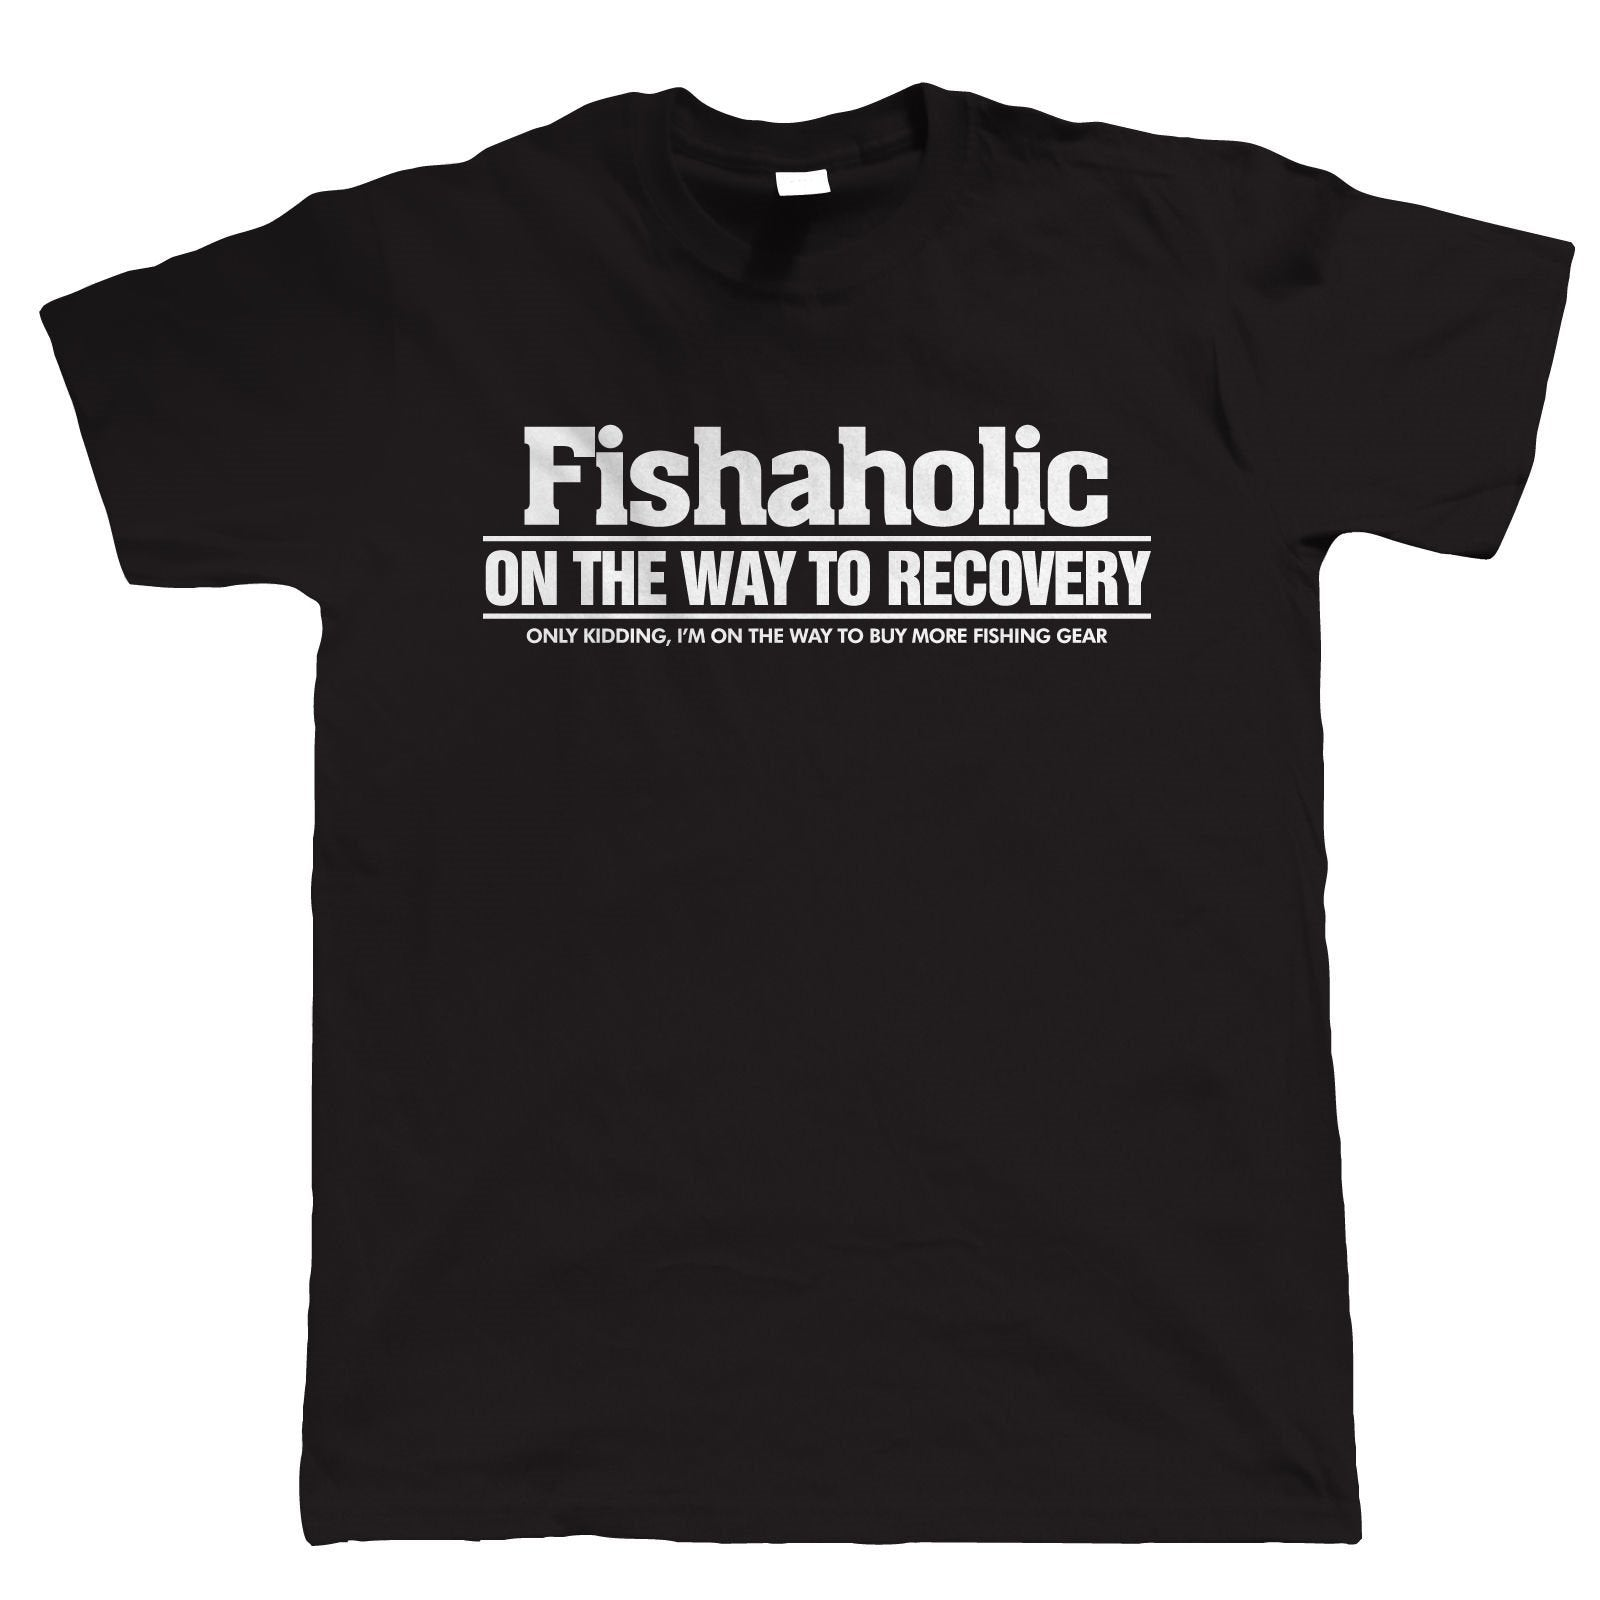 Fishaholic On The Way To Recovery. Only Kidding, I'm On The Way To Buy More Fishing Gear- Men's T-Shirt - Cozzoo